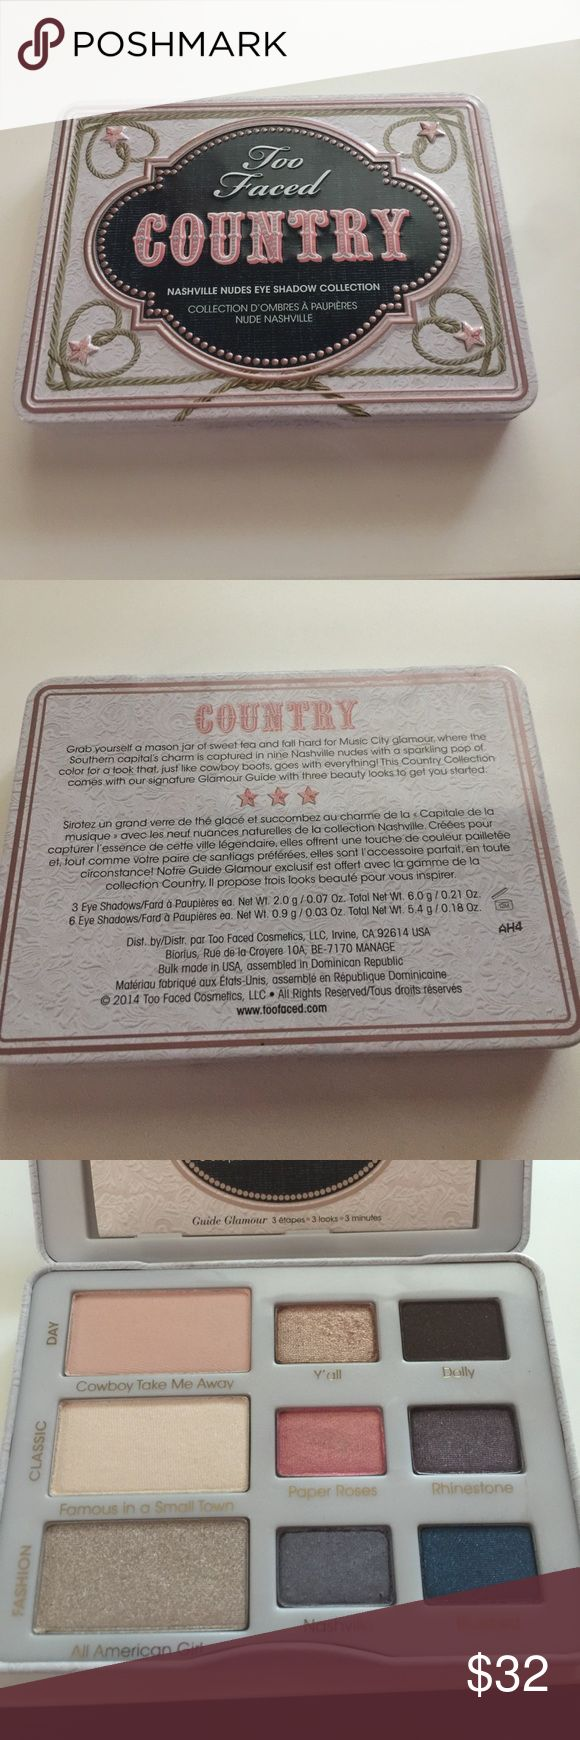 Too Faced Country Some colors have been lightly swatched. Y'all has been used on eye once. Doesn't come with box. I live in a smoke free home and own a dog. Too Faced Makeup Eyeshadow